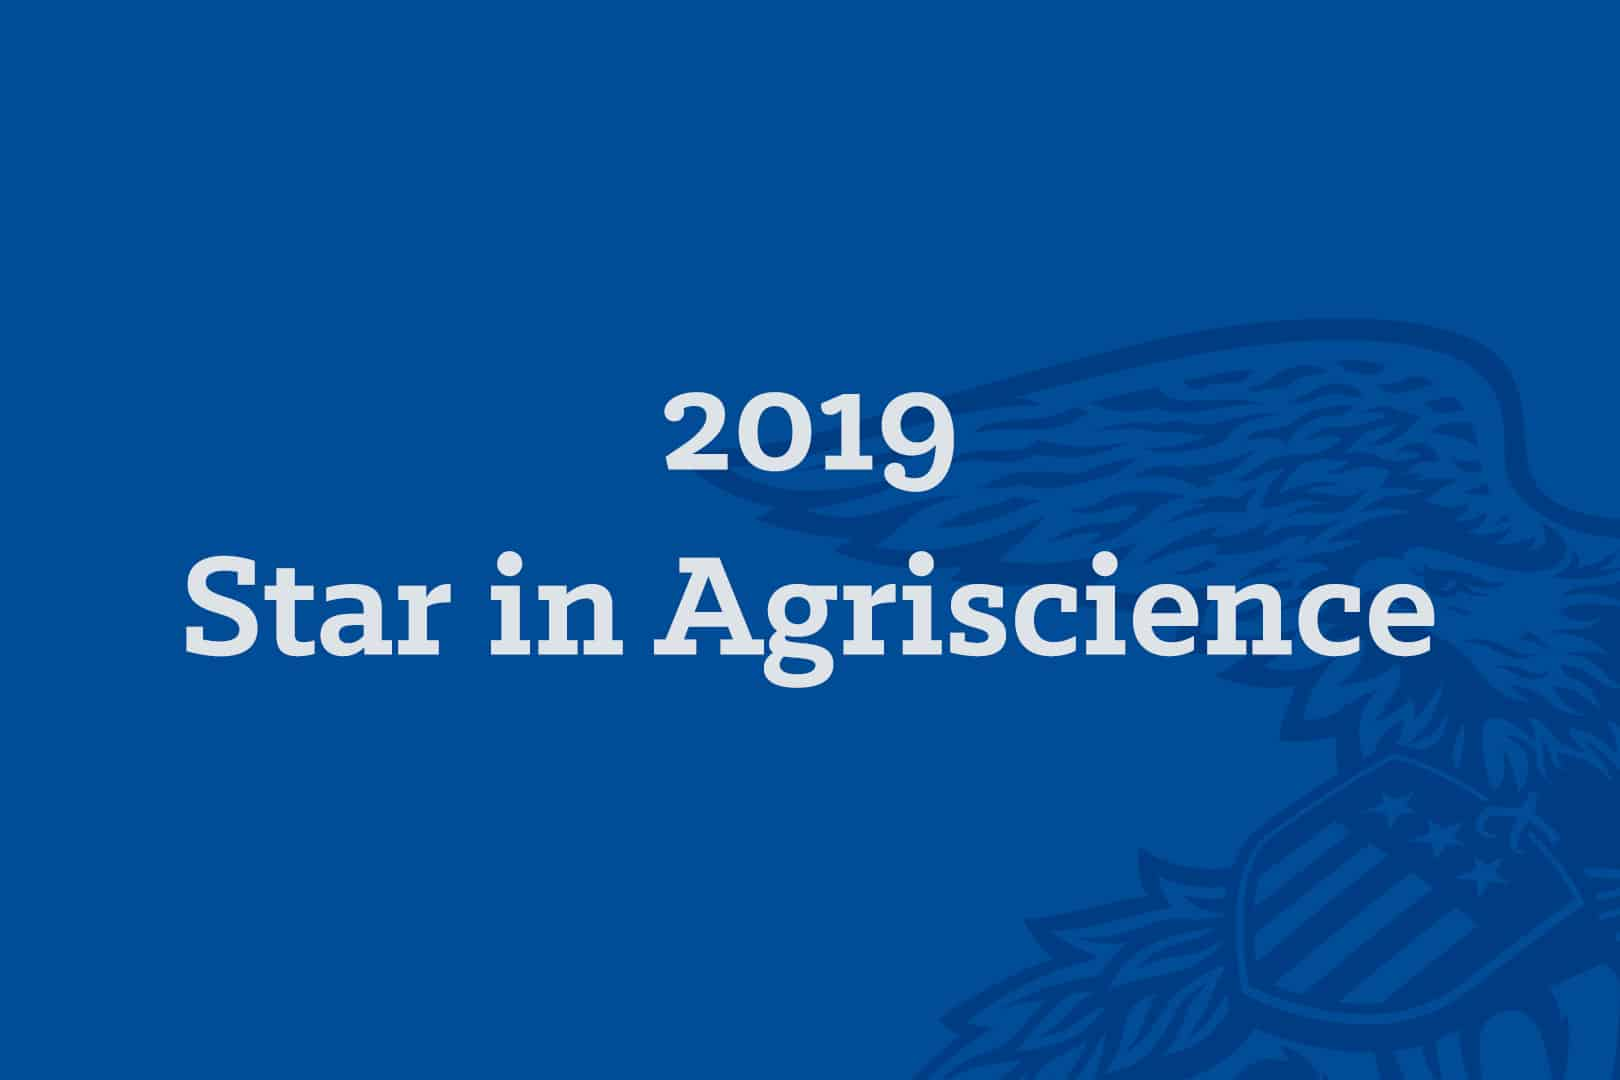 2019 Star in Agriscience 600x400